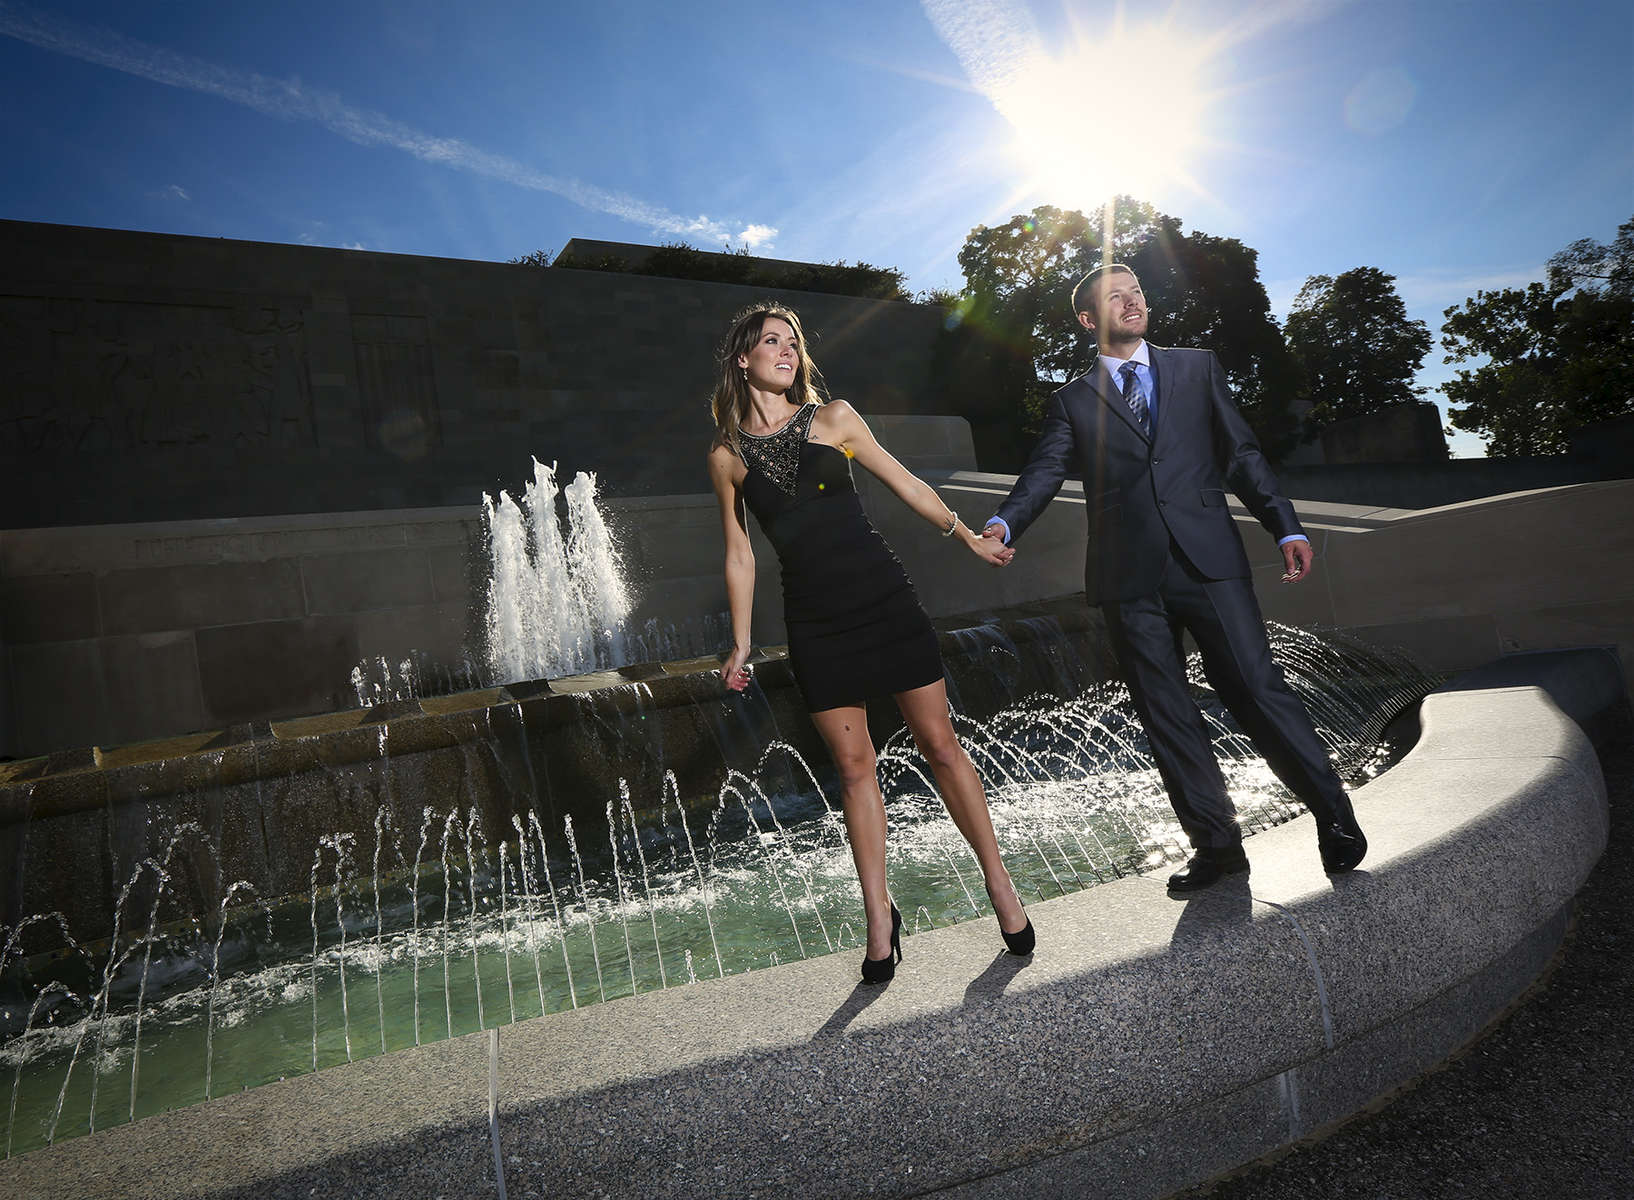 Engagement photo session in Kansas City, Liberty Memorial